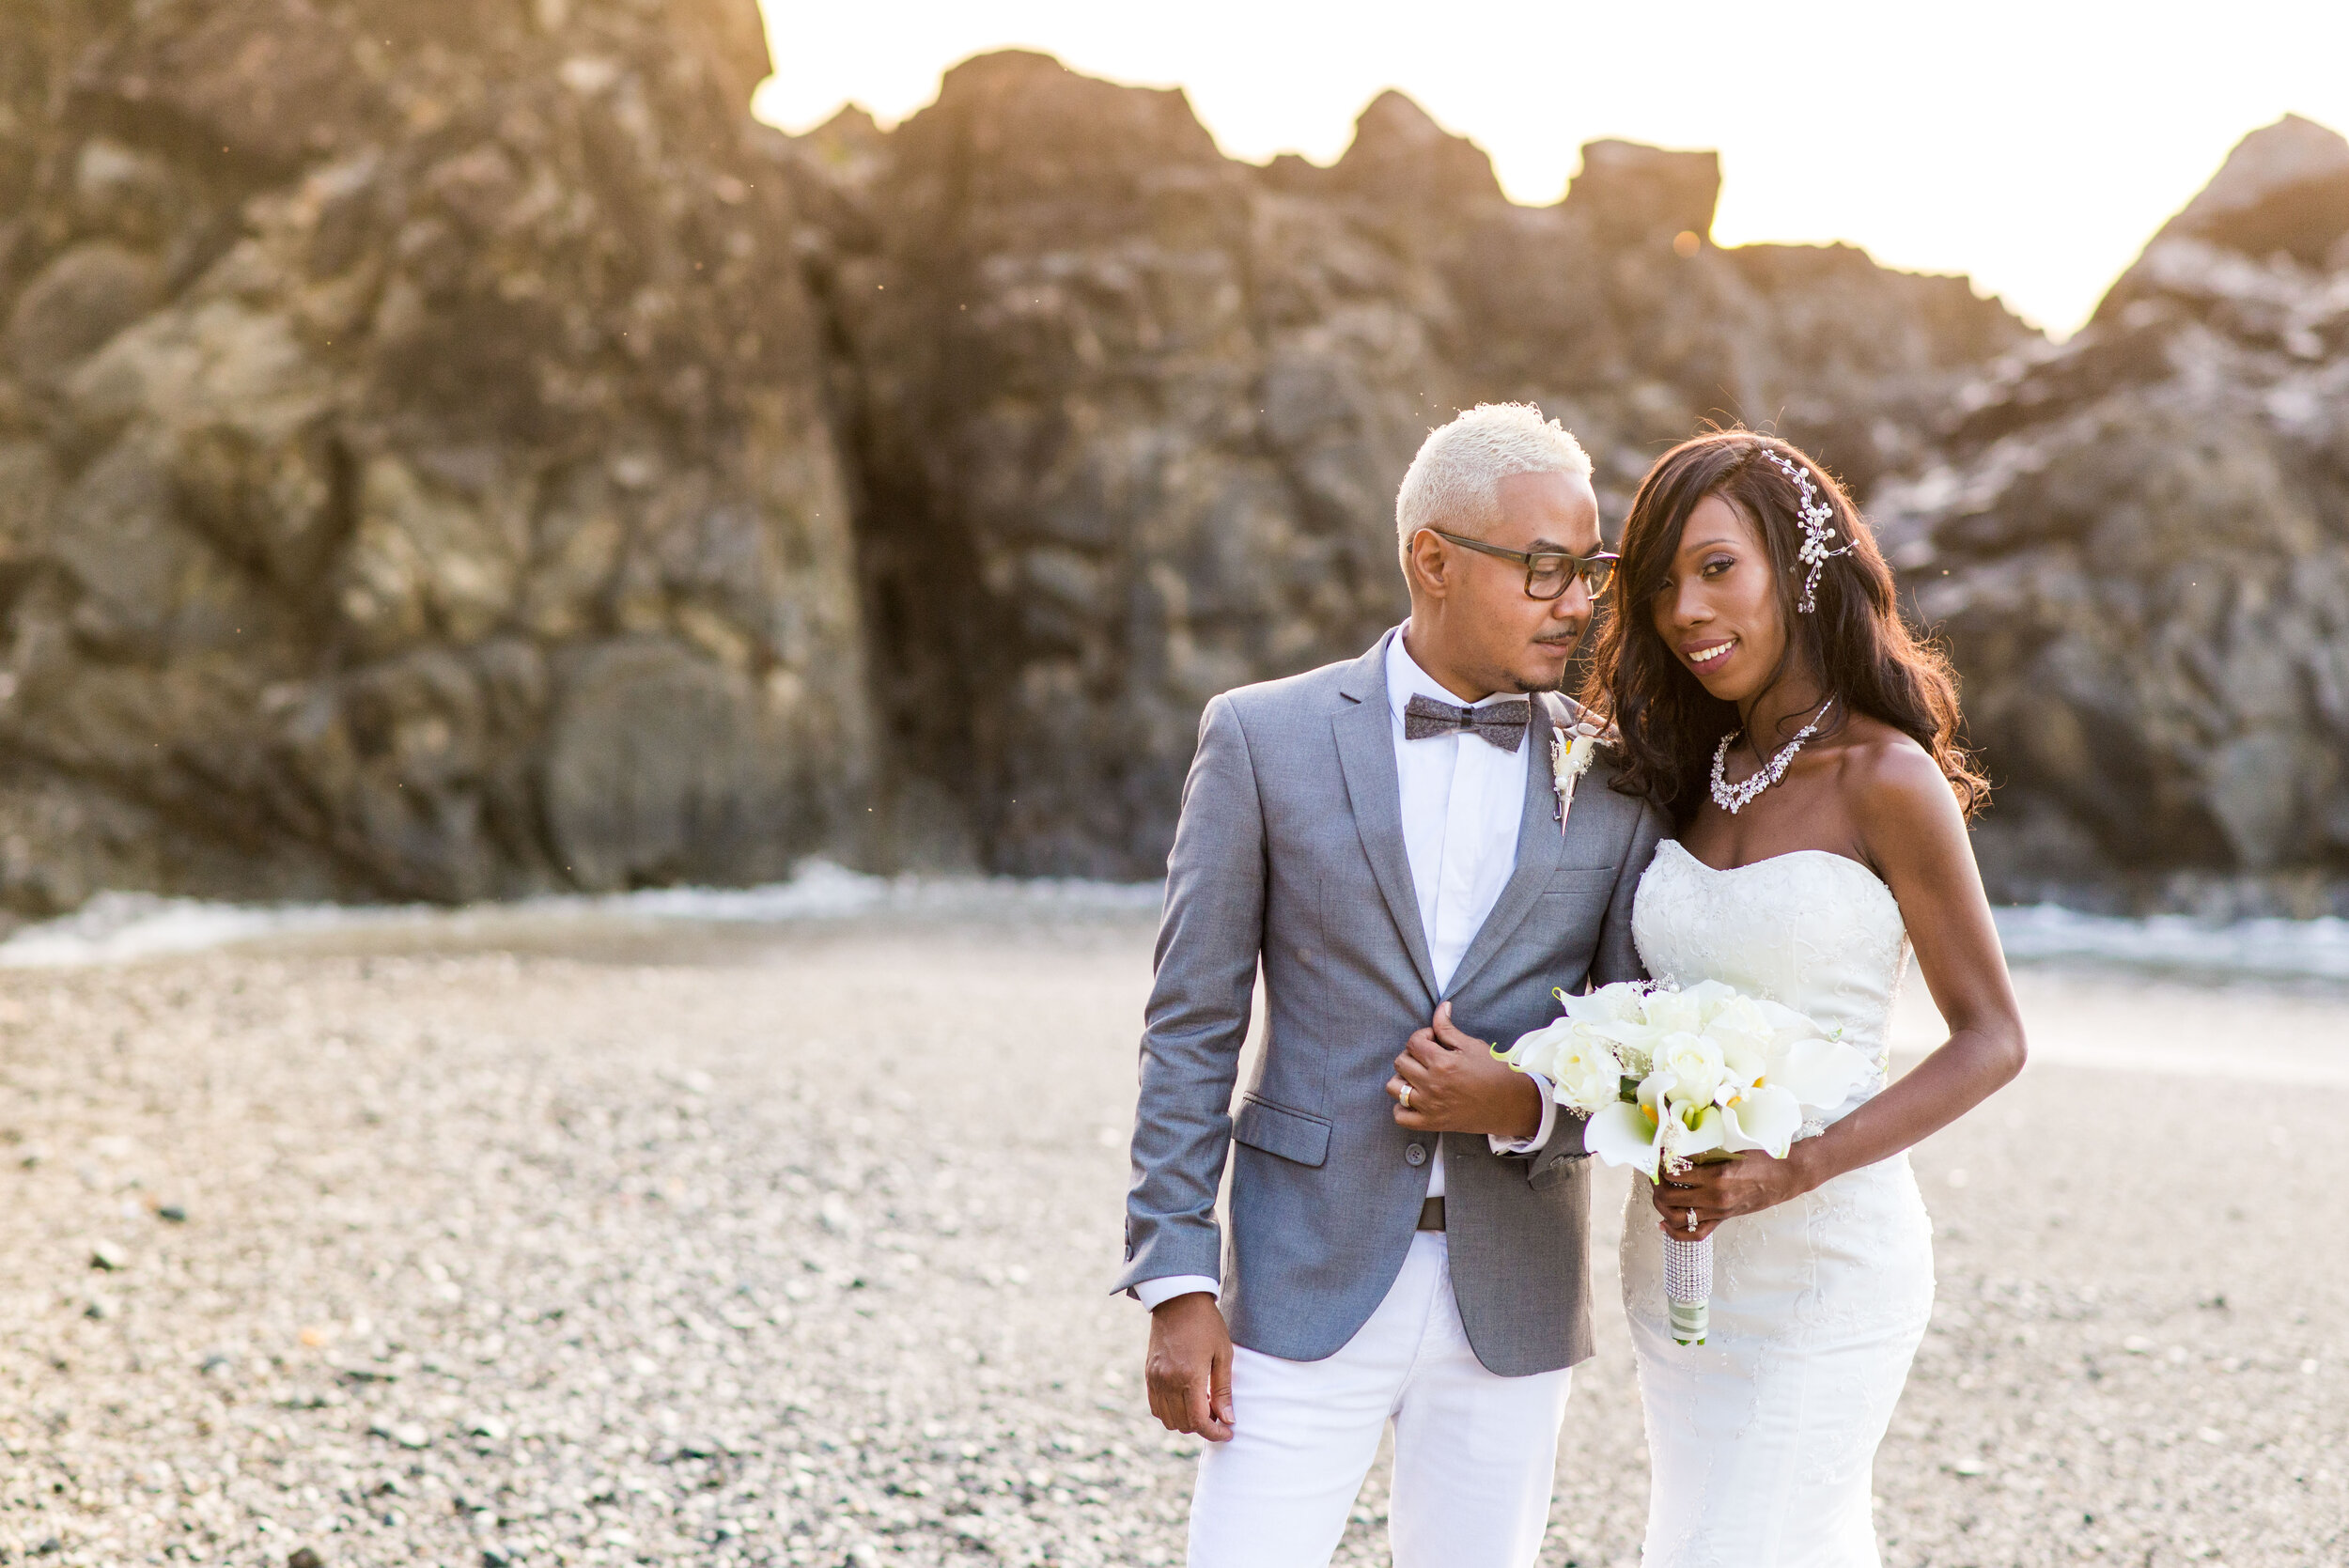 Jamie & Keisha - Amazing!! Professional!! Warm!! Excellent!! It was a honor to have them accept our invitation.. We would recommend them without hesitation...